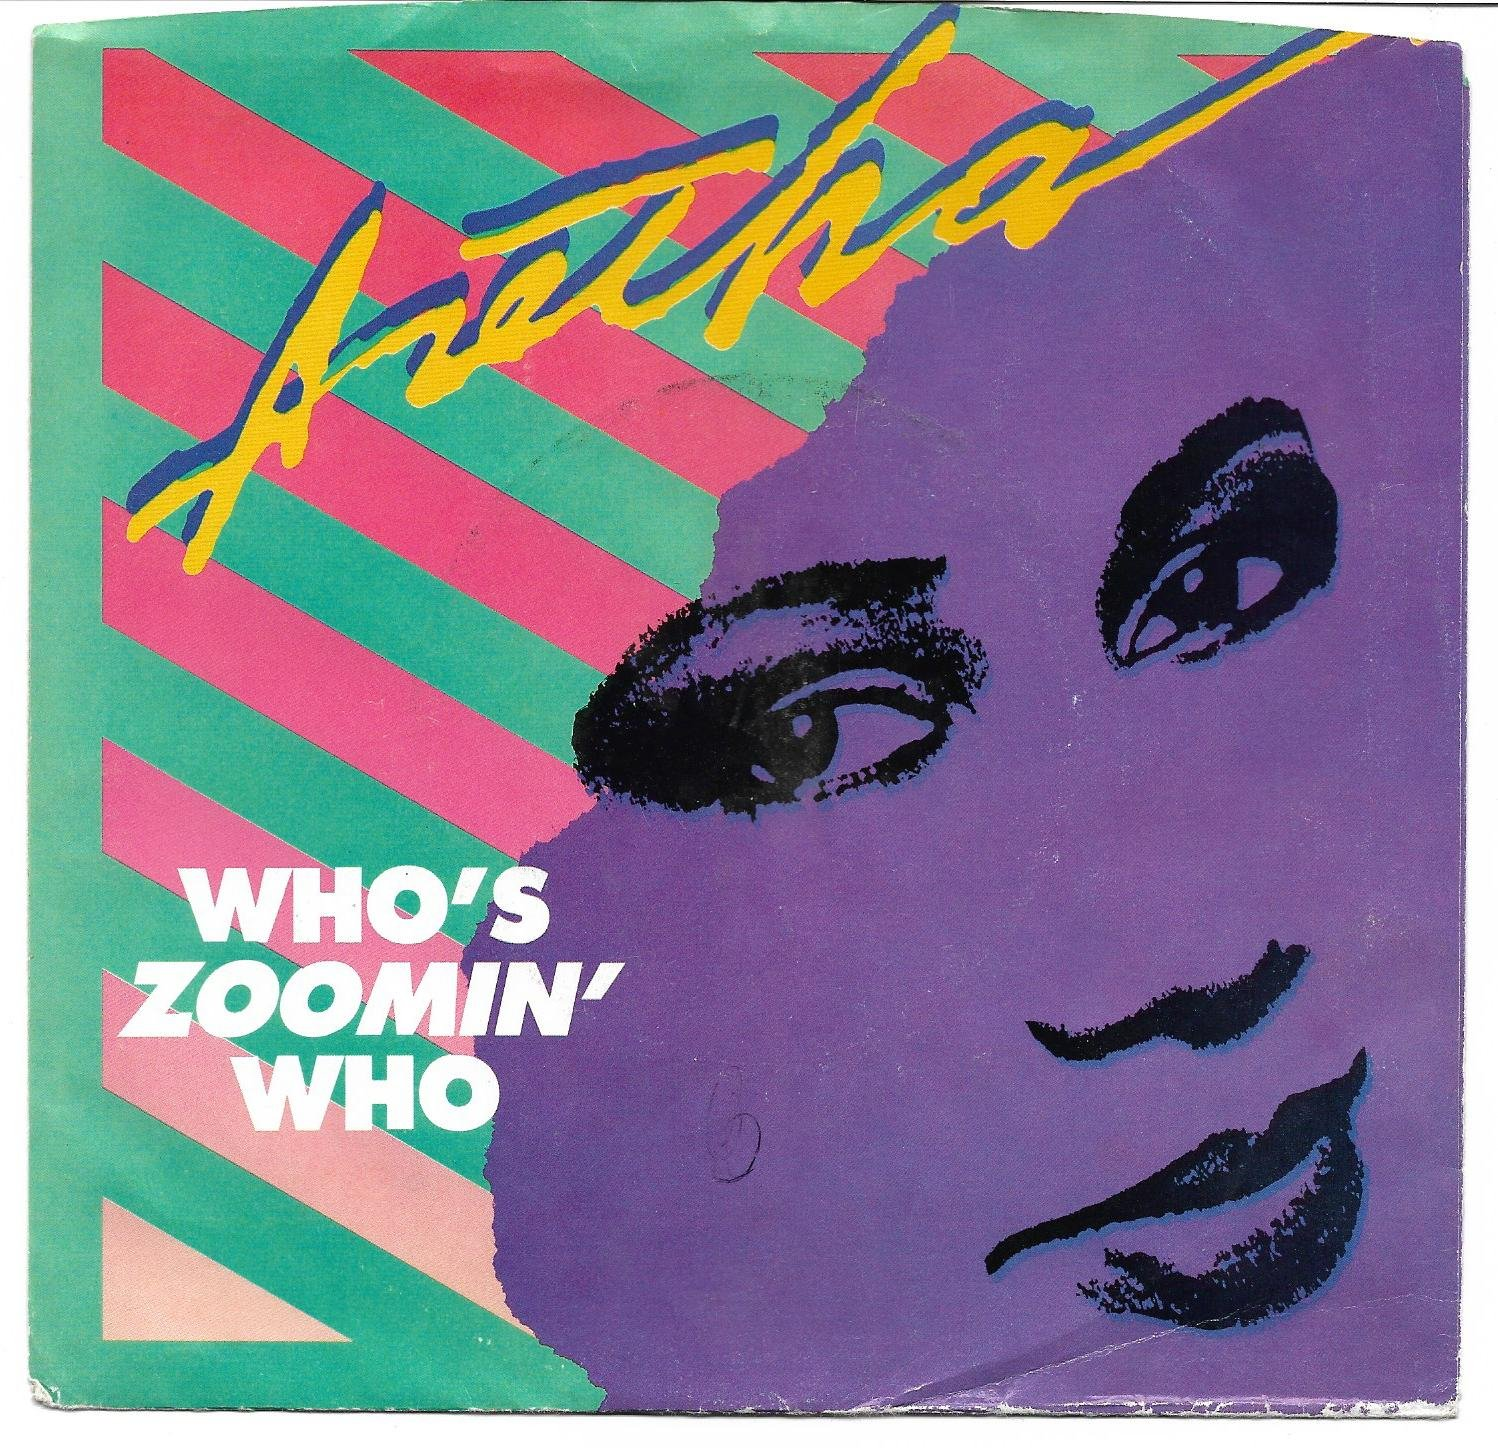 """Picture Sleeve ONLY: Aretha Frankin: """"Who's Zoomin' Who"""" - from '85 hit - EX!"""